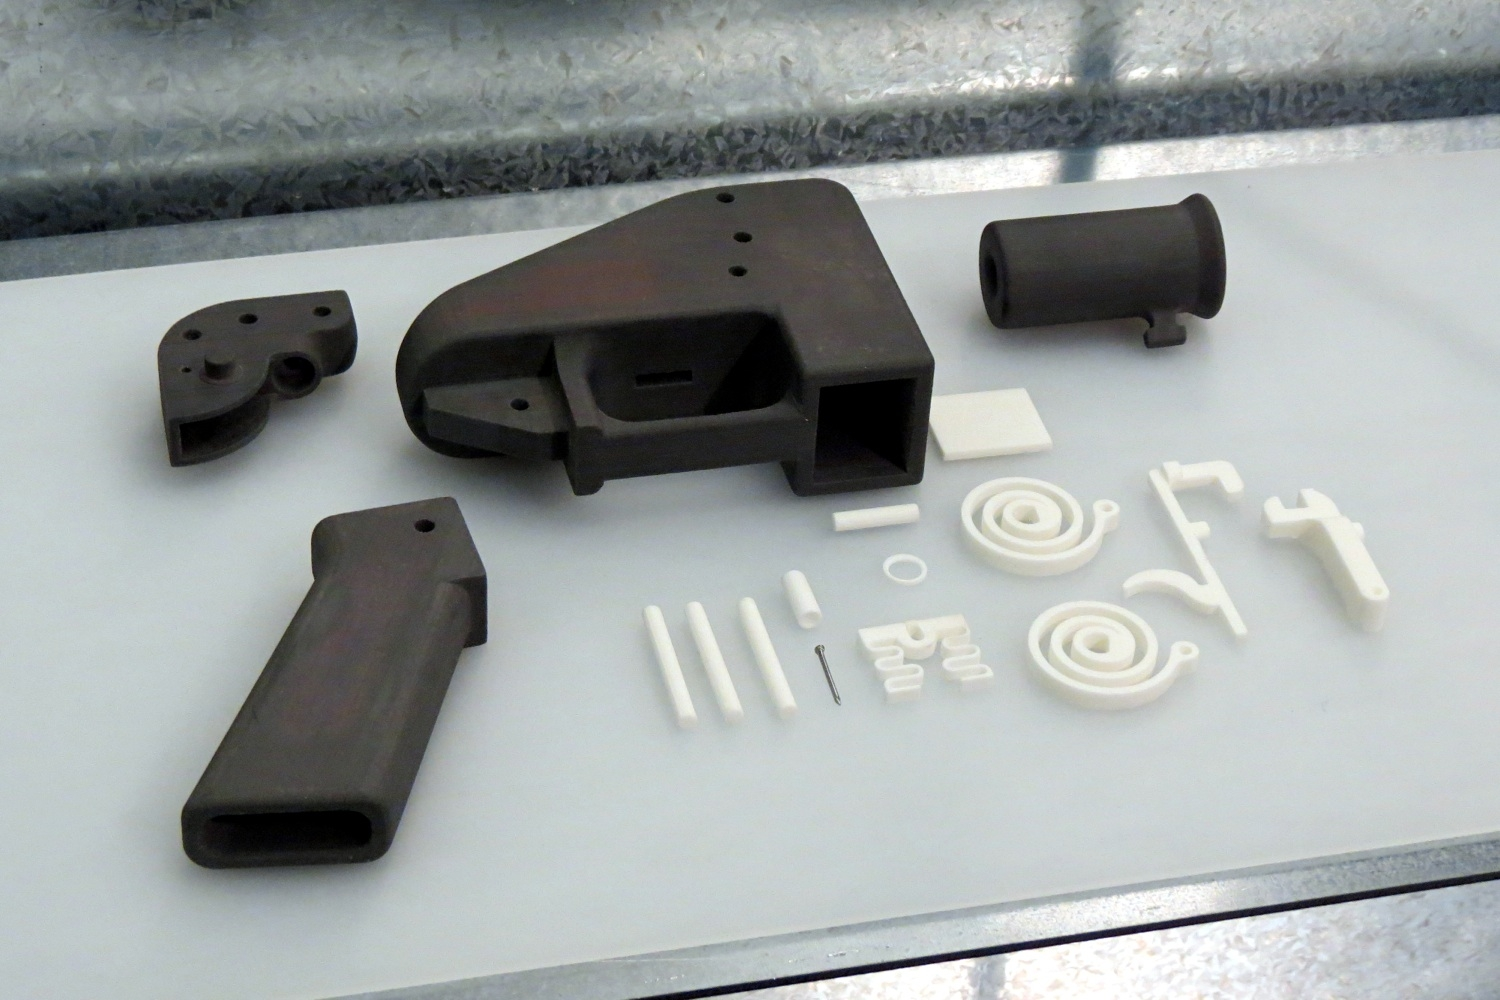 5 Alarming 3D Printed Guns